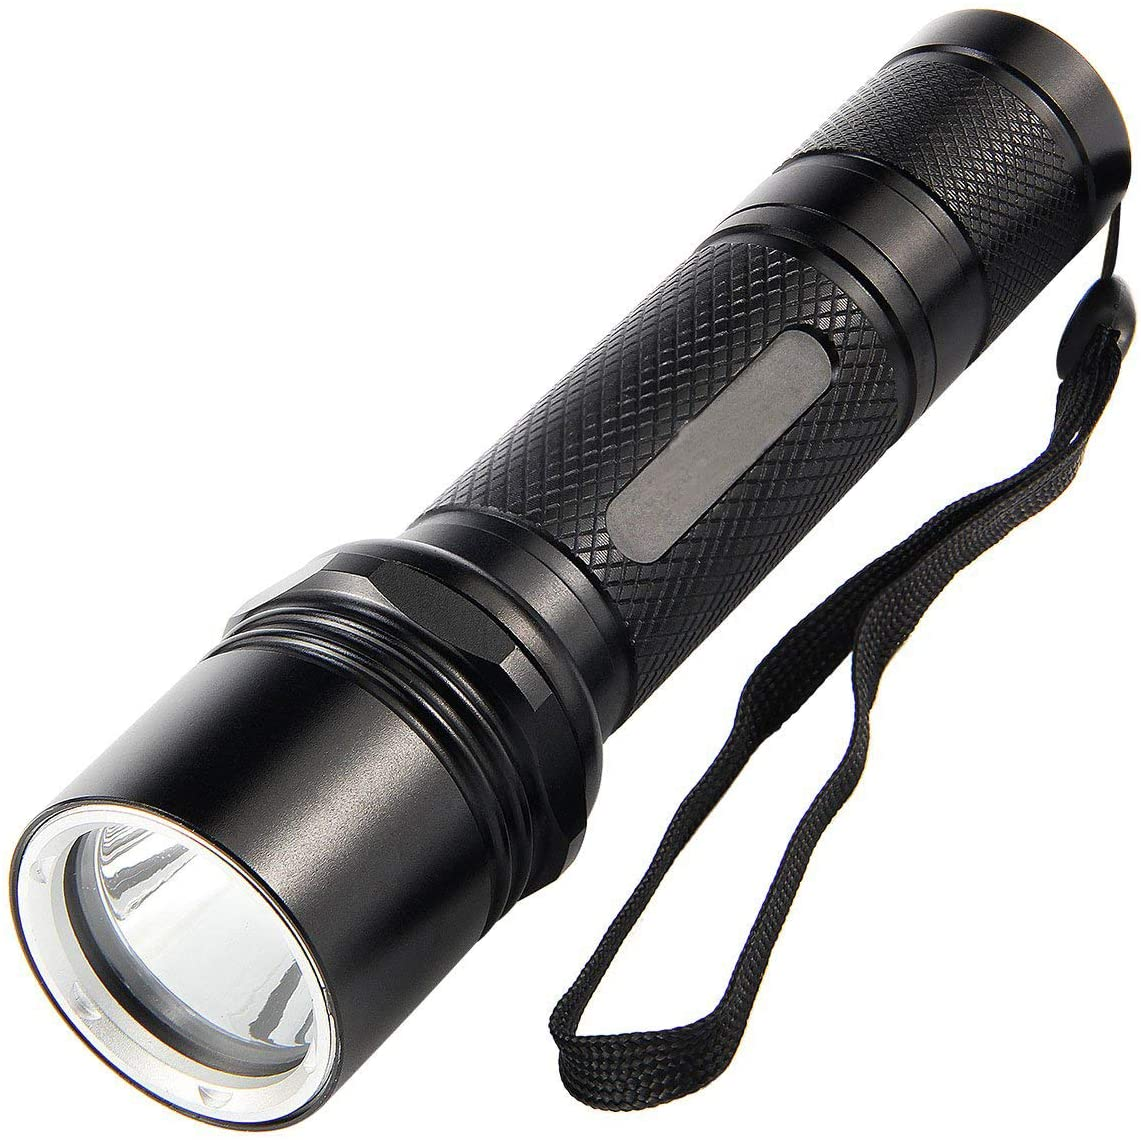 INVCO SUPER Bright Flashlight Magnetic Based LED Camping and Emergency lamp (not included battery)